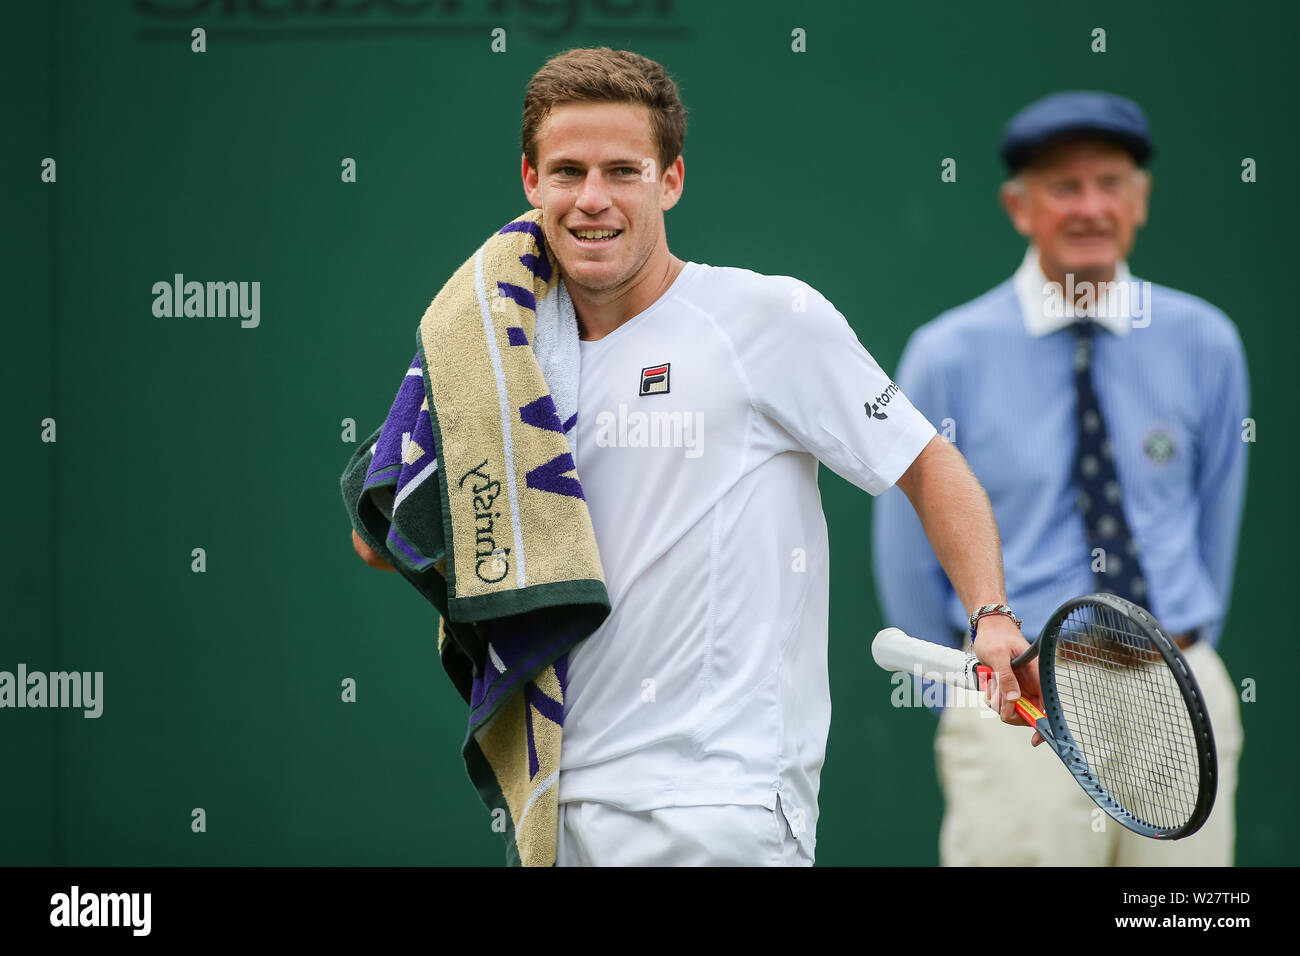 Wimbledon, London, UK. 6th July, 2019. Diego Schwartzman of Argentina reacts during the men's singles third round match of the Wimbledon Lawn Tennis Championships against Matteo Berrettini of Italy at the All England Lawn Tennis and Croquet Club in London, England on July 6, 2019. Credit: AFLO/Alamy Live News - Stock Image